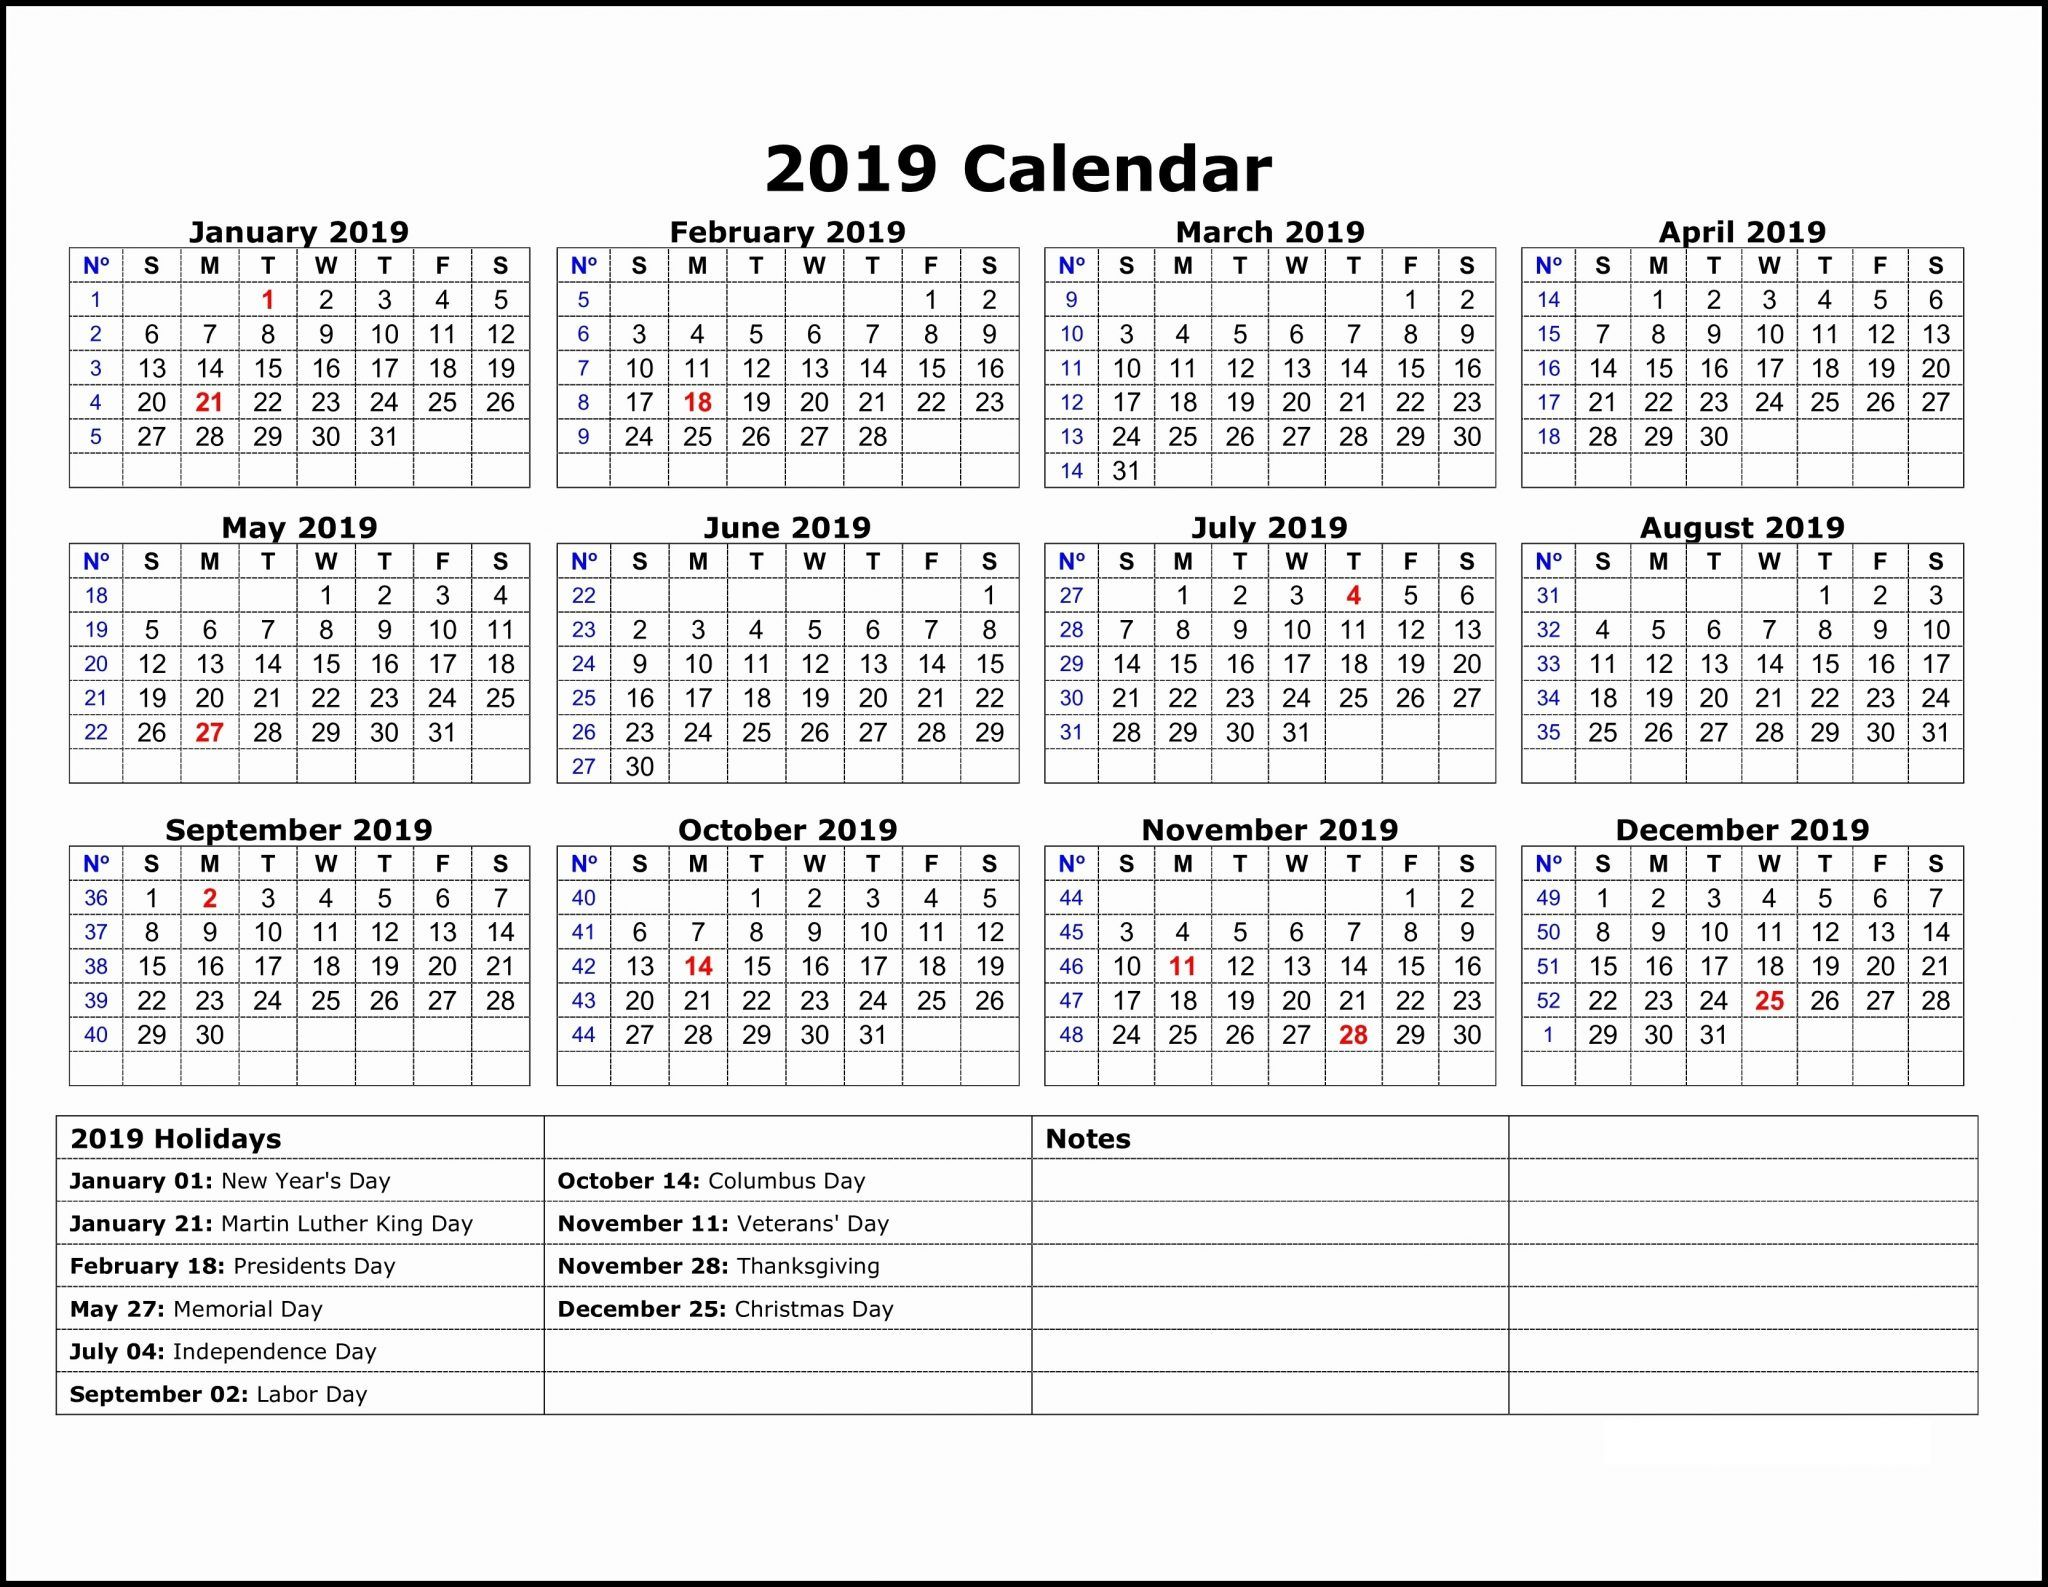 2019 Holiday Calendar Usa School Banks Office List Holiday